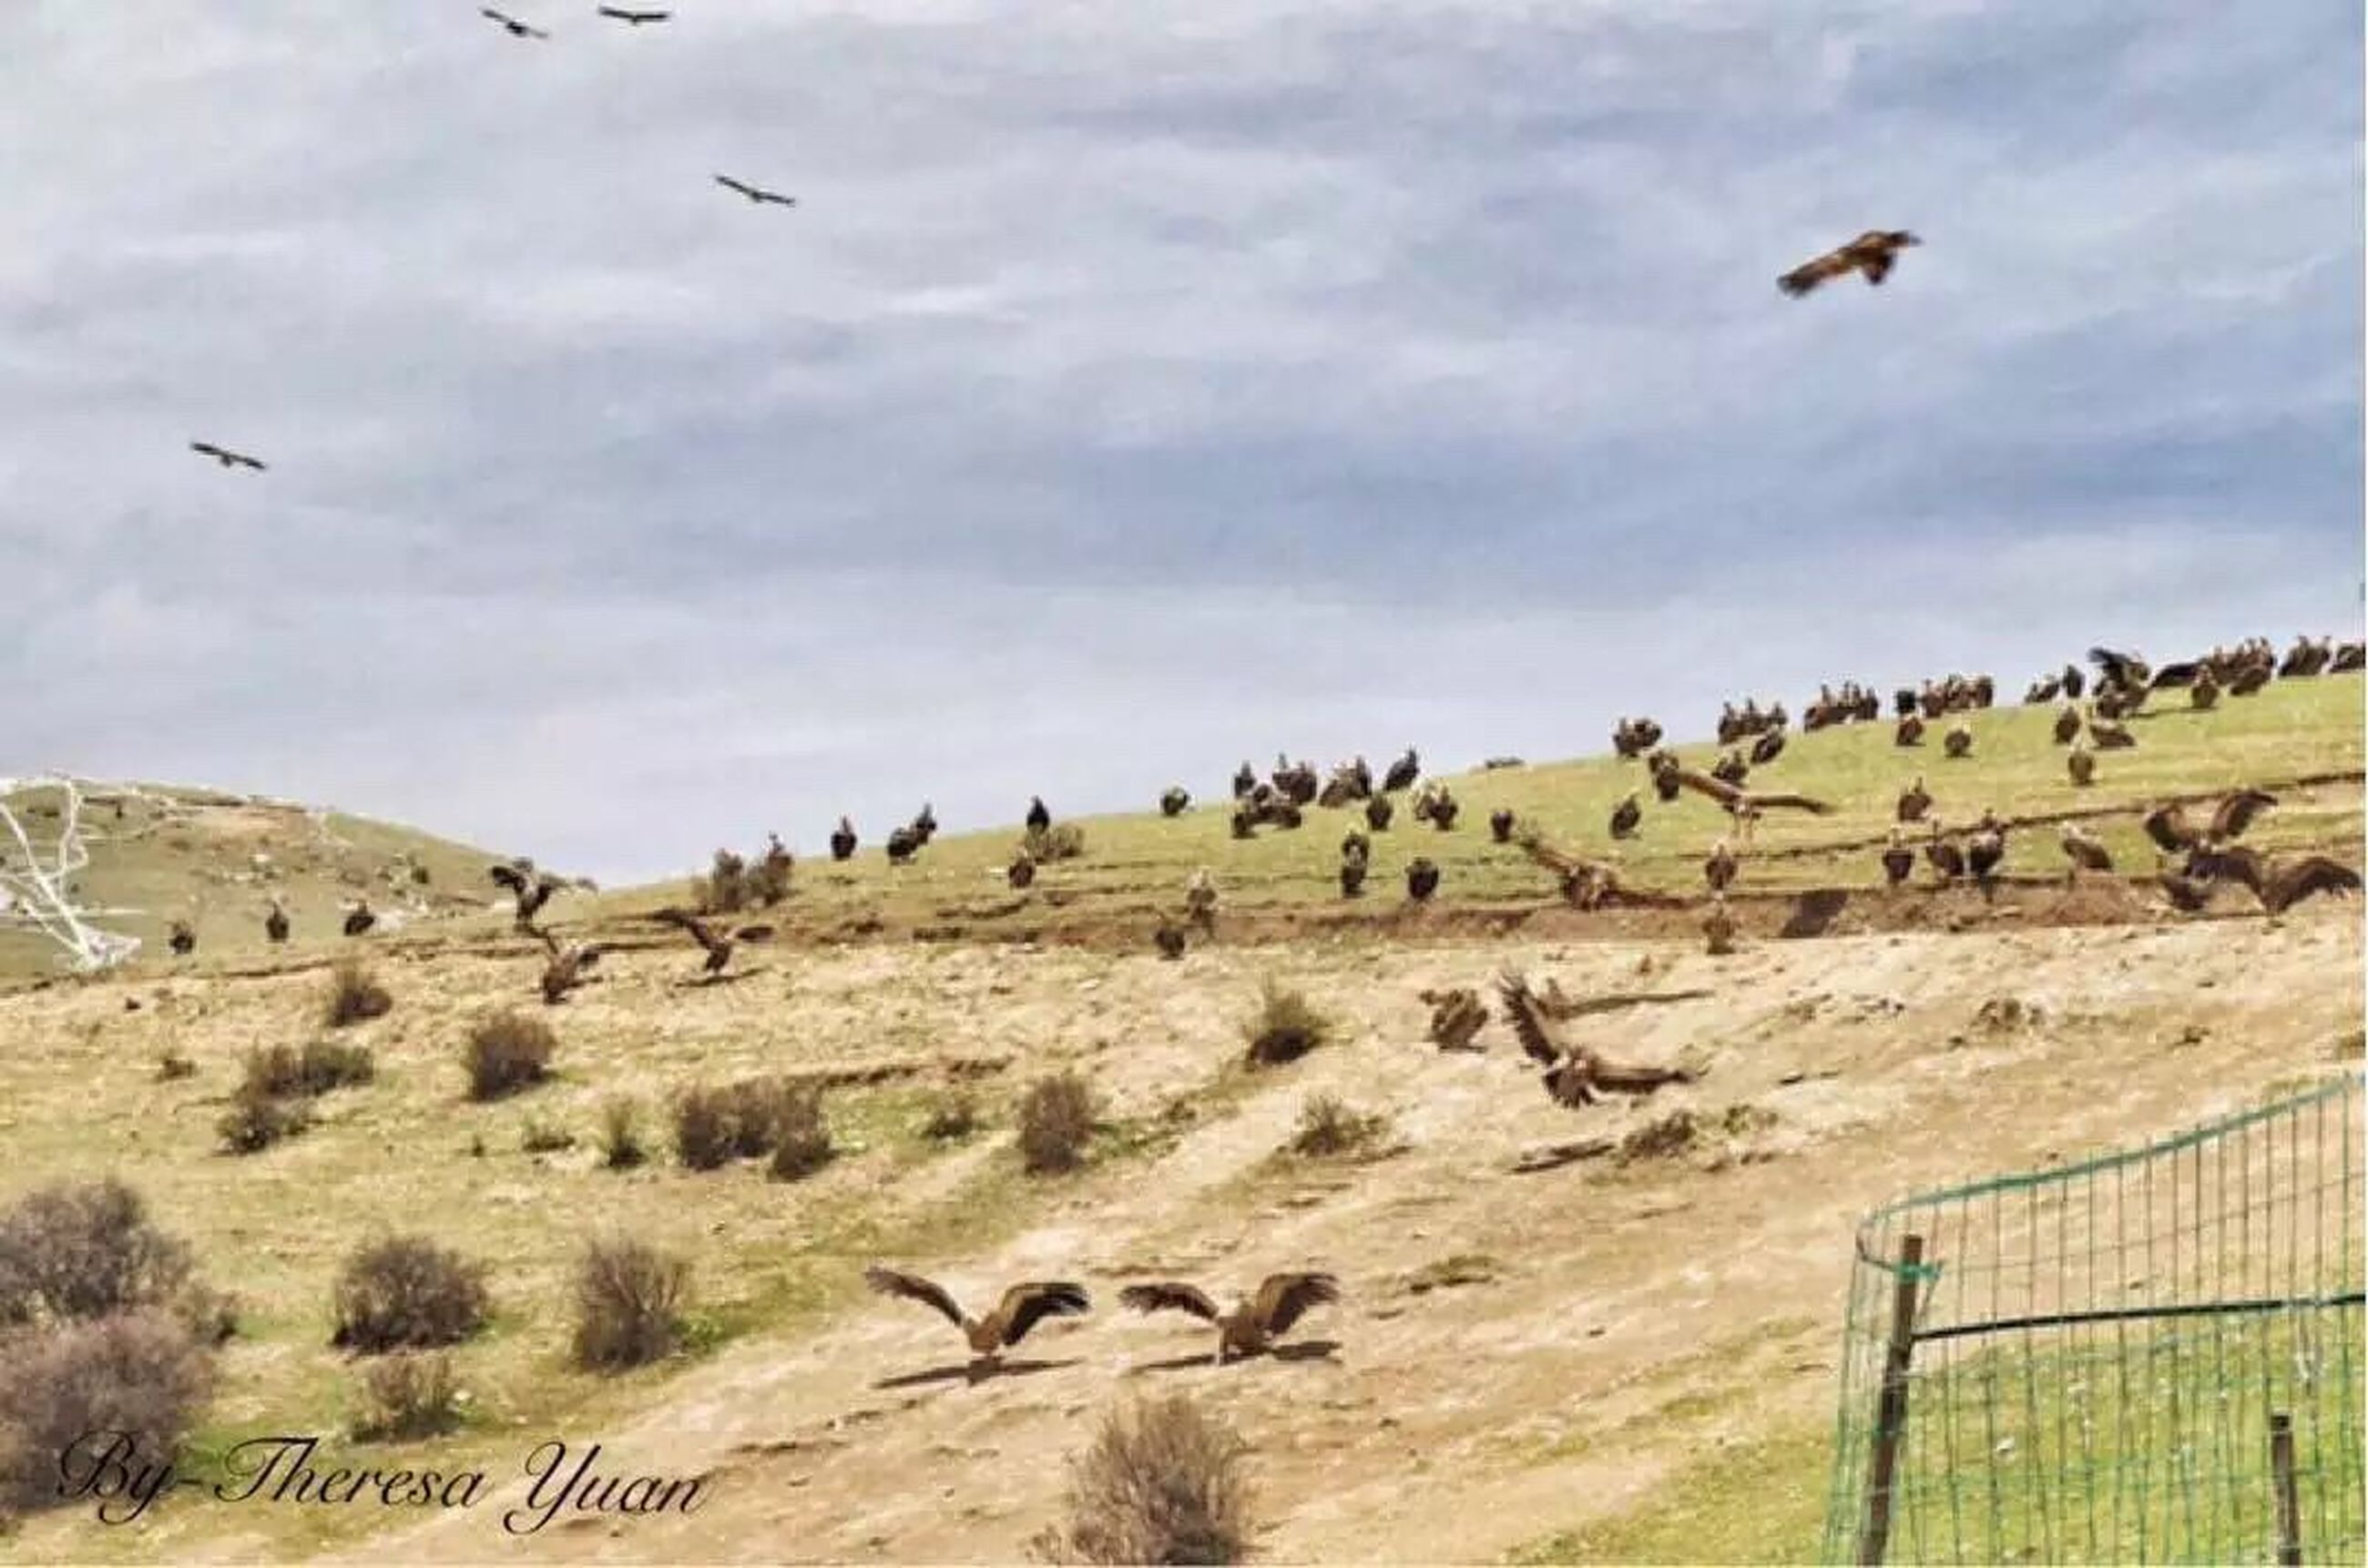 animal themes, landscape, animals in the wild, bird, wildlife, grass, tranquility, sky, nature, field, tranquil scene, flying, zoology, remote, scenics, beauty in nature, outdoors, non-urban scene, cloud - sky, solitude, countryside, no people, grassy, national park, horizon over land